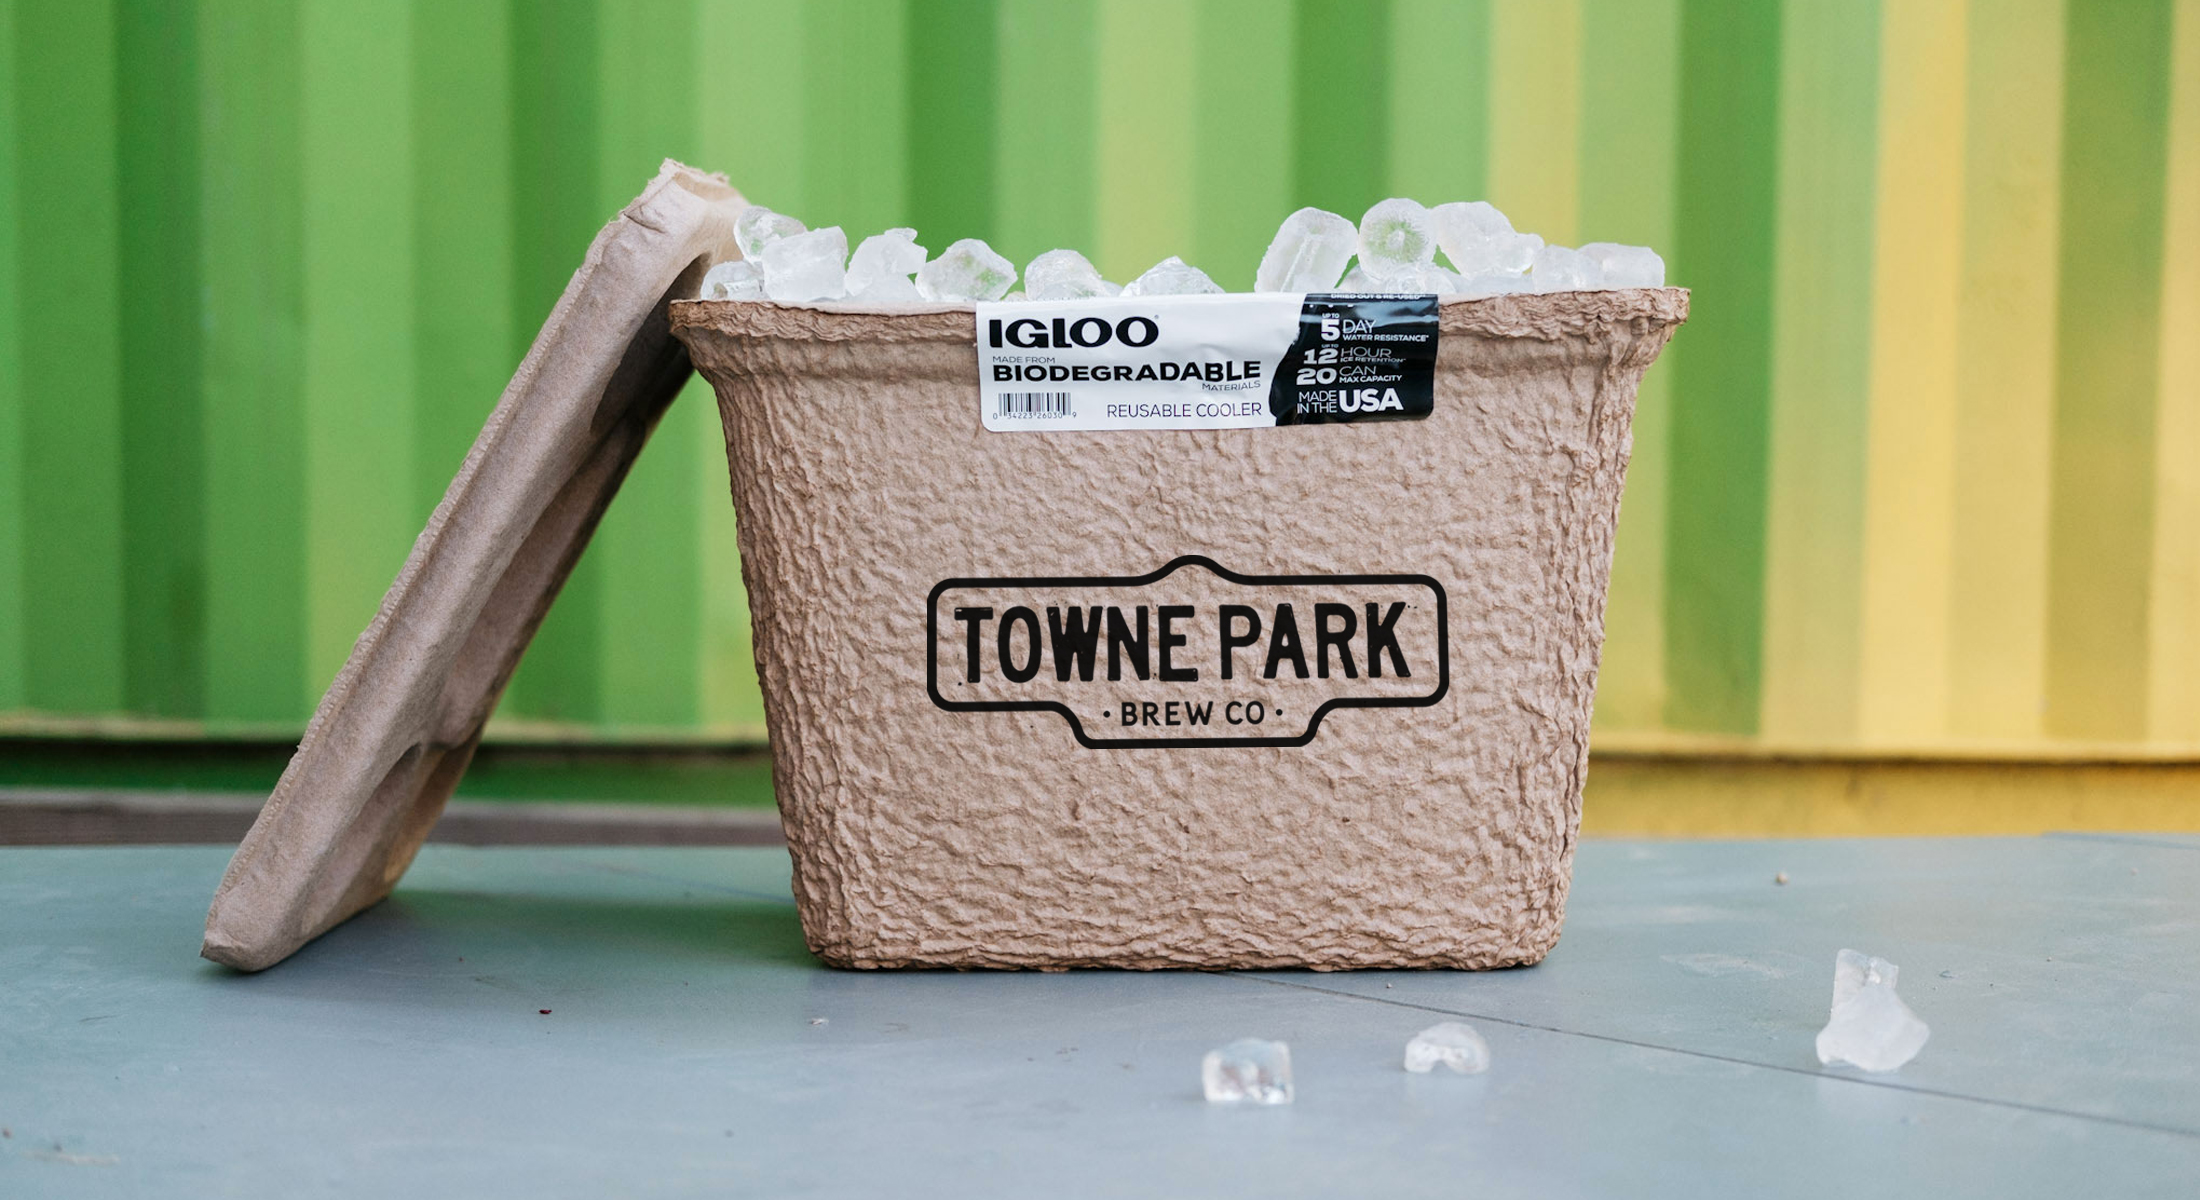 Igloo Has Launched Its First-Ever Biodegradable Cooler – Now With Your Logo!